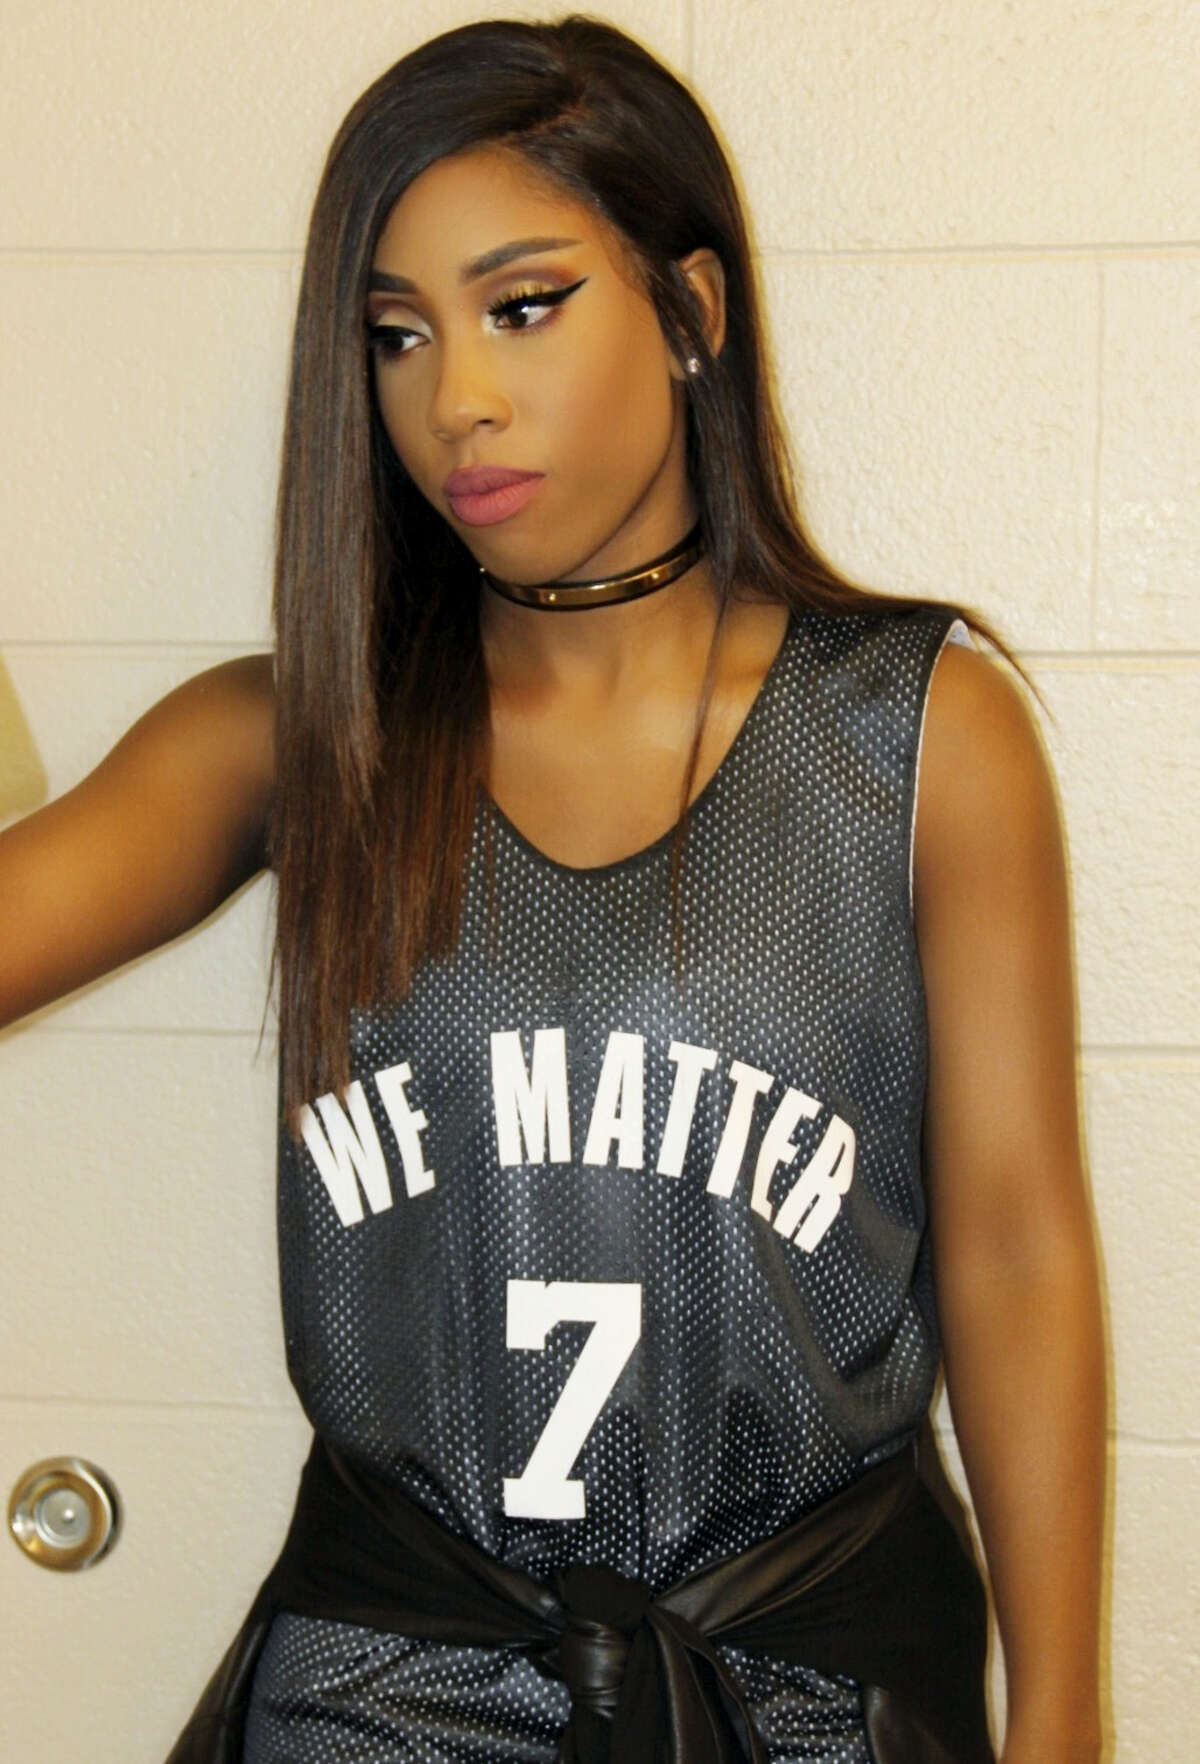 This photo provided by Atlantic Records shows Sevyn Streeter at an arena for a game between the Philadelphia 76ers and Oklahoma City Thunder in Philadelphia on Wednesday.